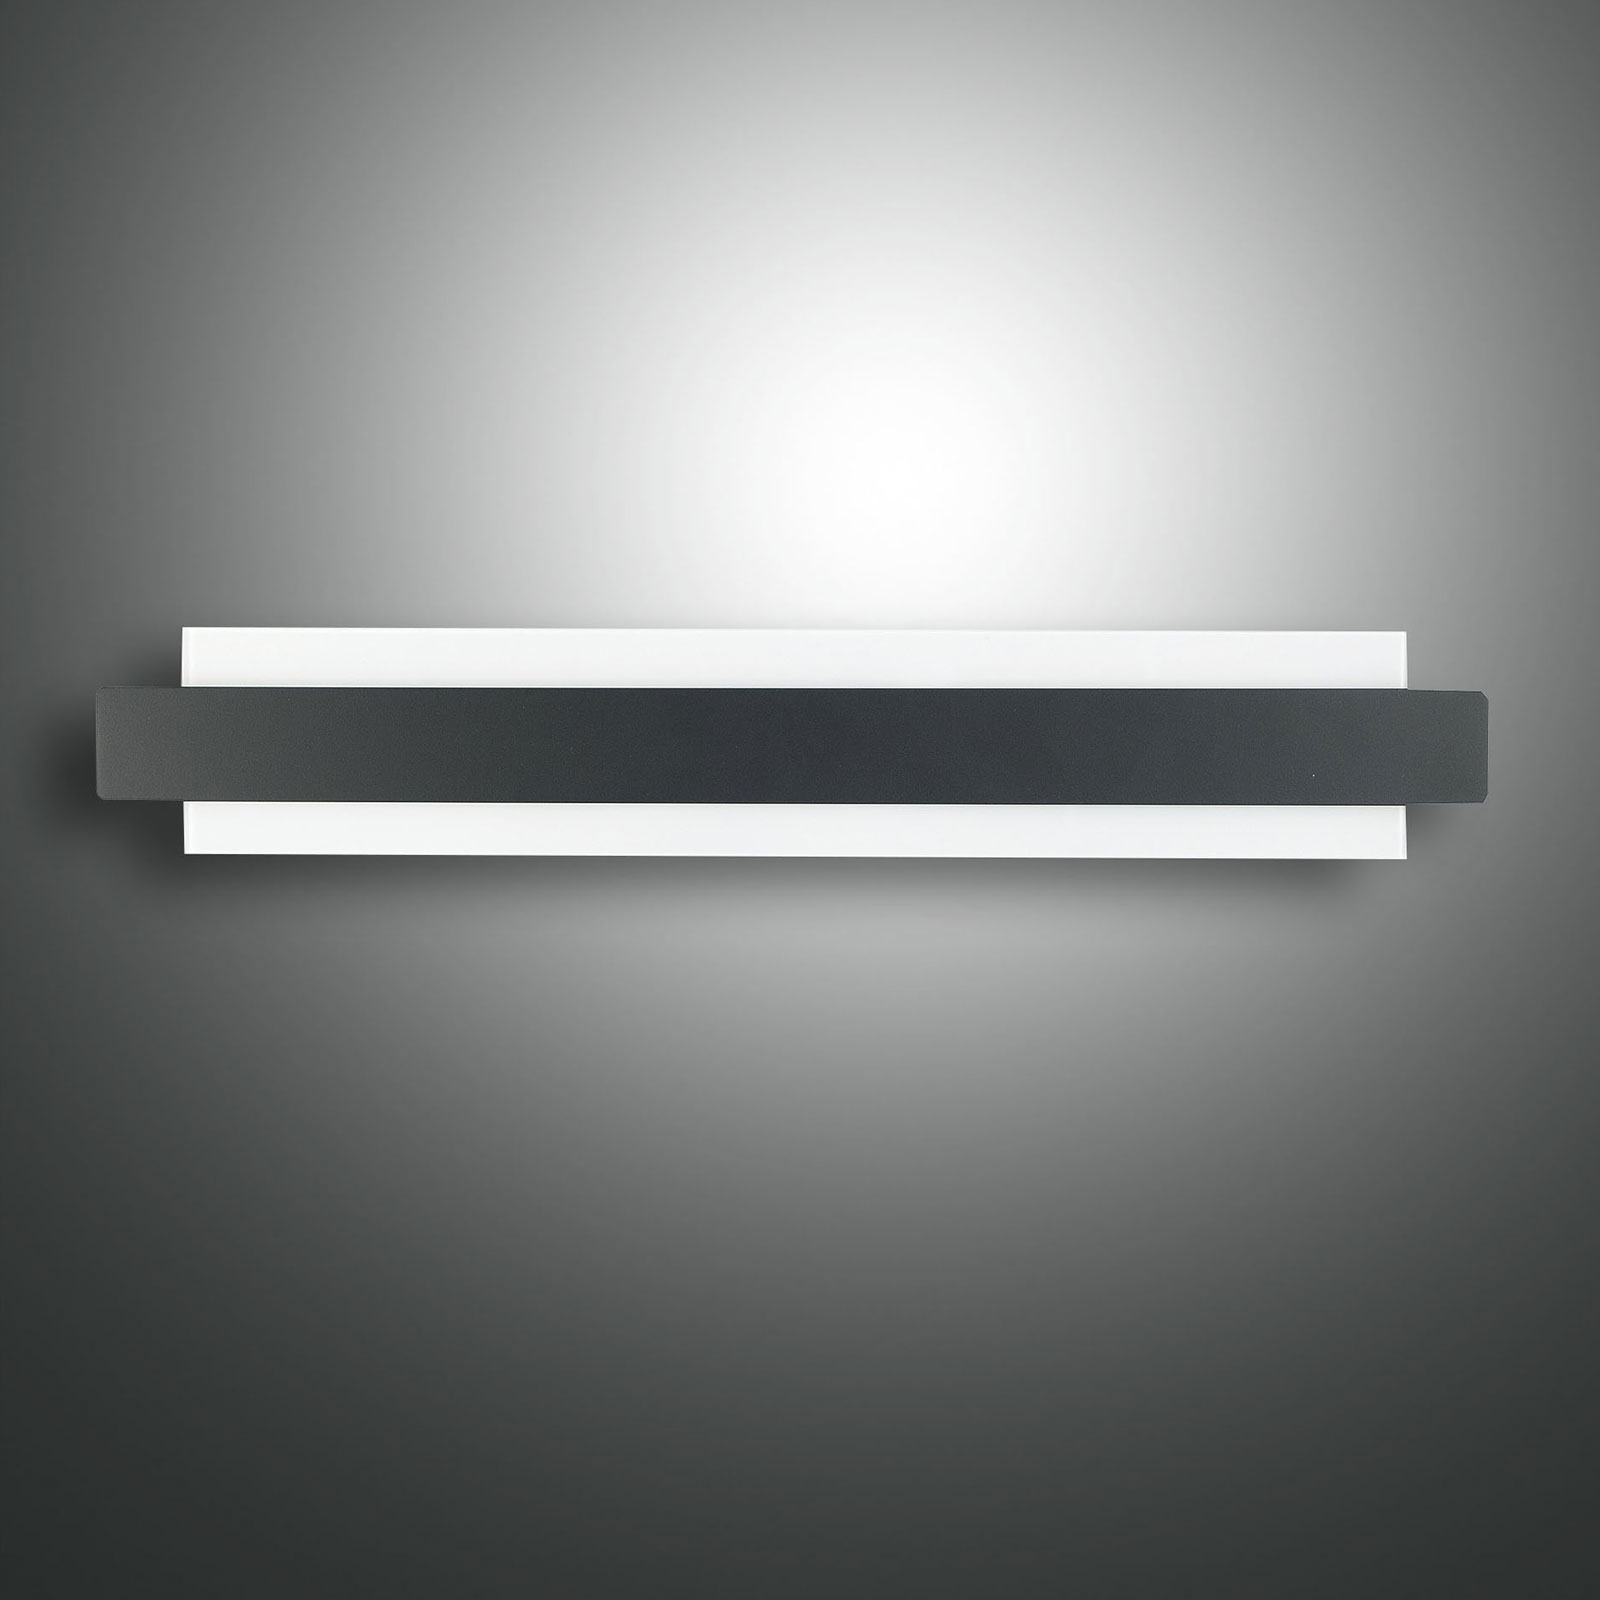 Applique LED Regolo con fronte metallico nero